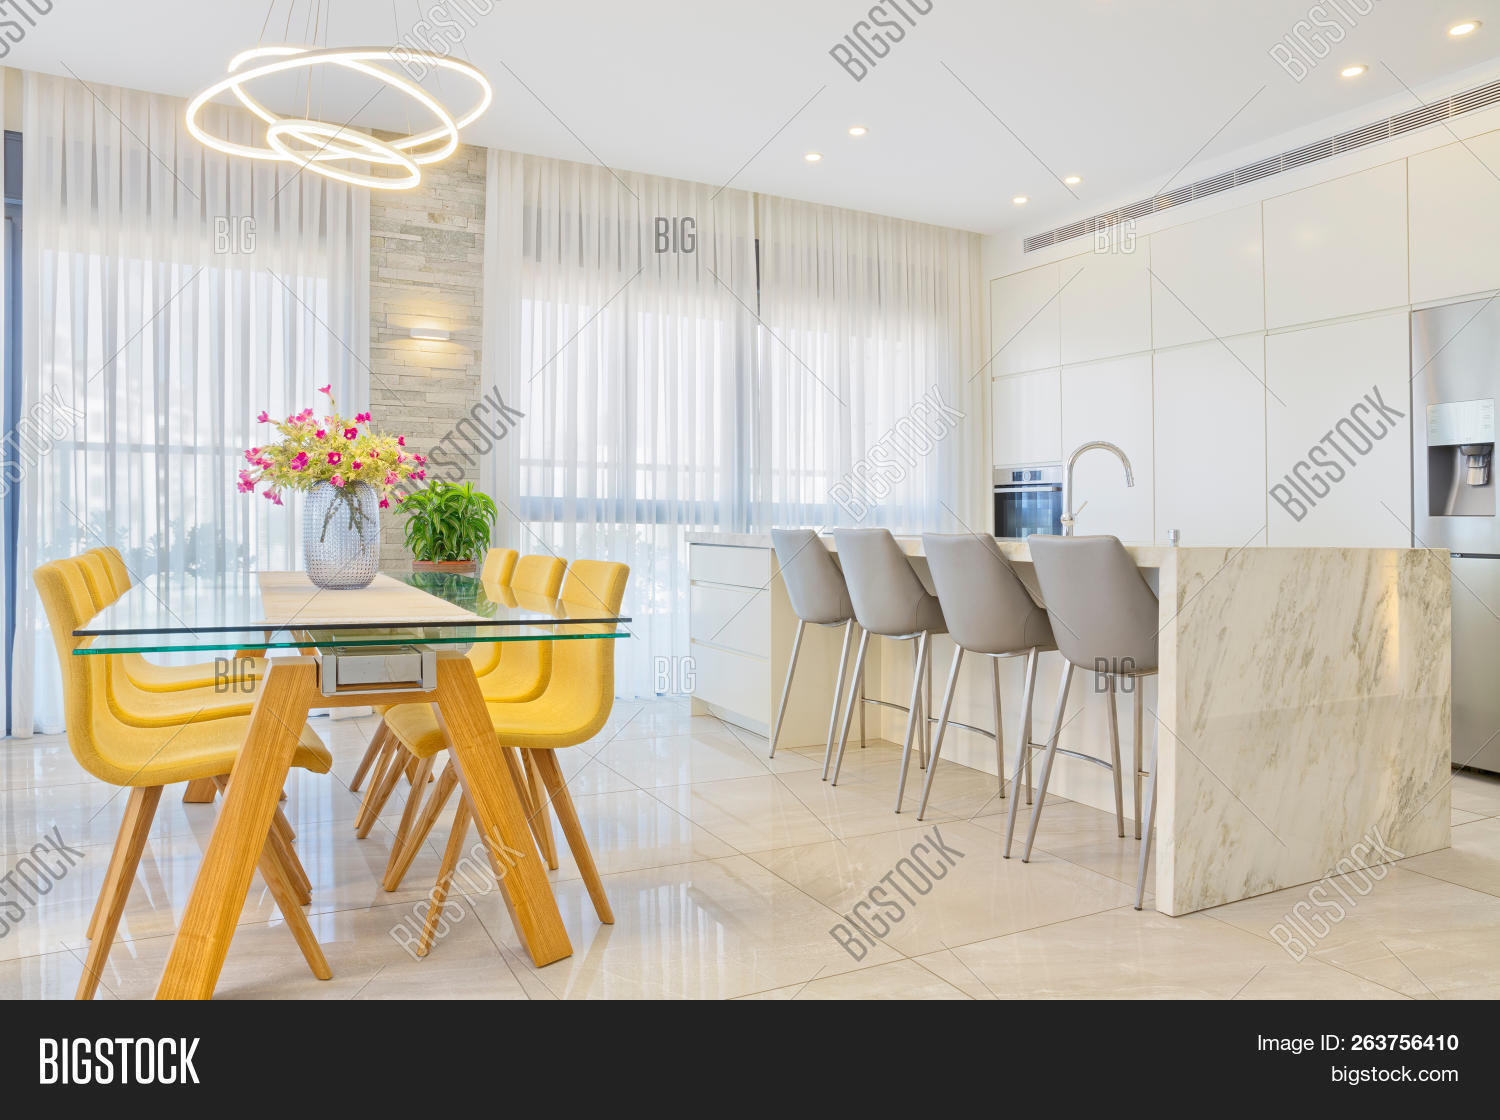 White Marble Island Modern Design Luxury Image Photo Free Trial Bigstock